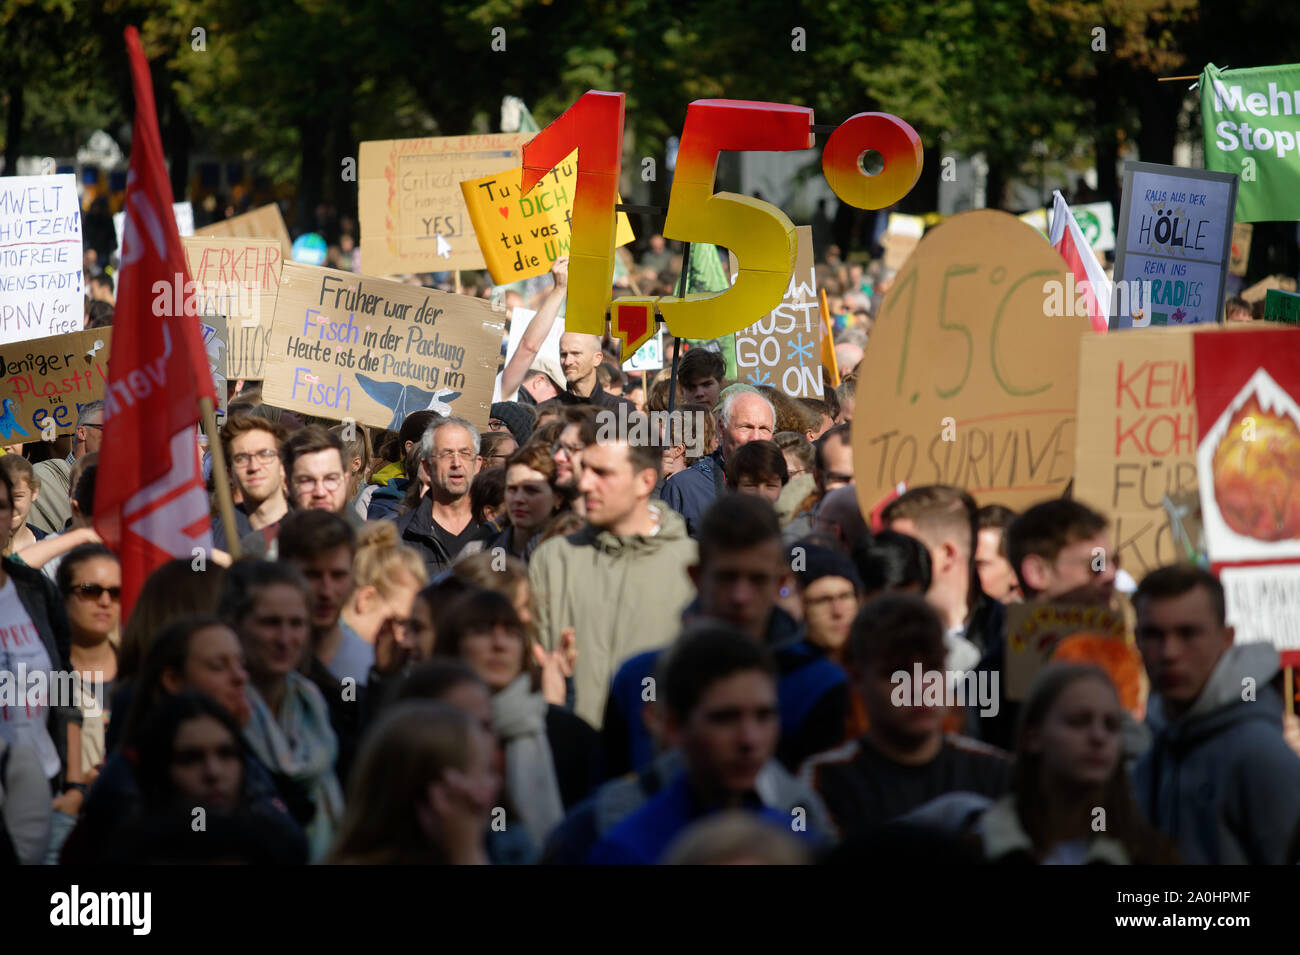 Bonn, Germany. 20th Sep, 2019. Several thousand people demonstrate at the Friday for Future demonstration for more climate protection. Demonstrators are holding up a large 1.5. The demonstrators follow the call of the movement Fridays for Future and want to fight for more climate protection. They want to support the calls for strikes and protests all over the world. Credit: Henning Kaiser/dpa/Alamy Live News Stock Photo